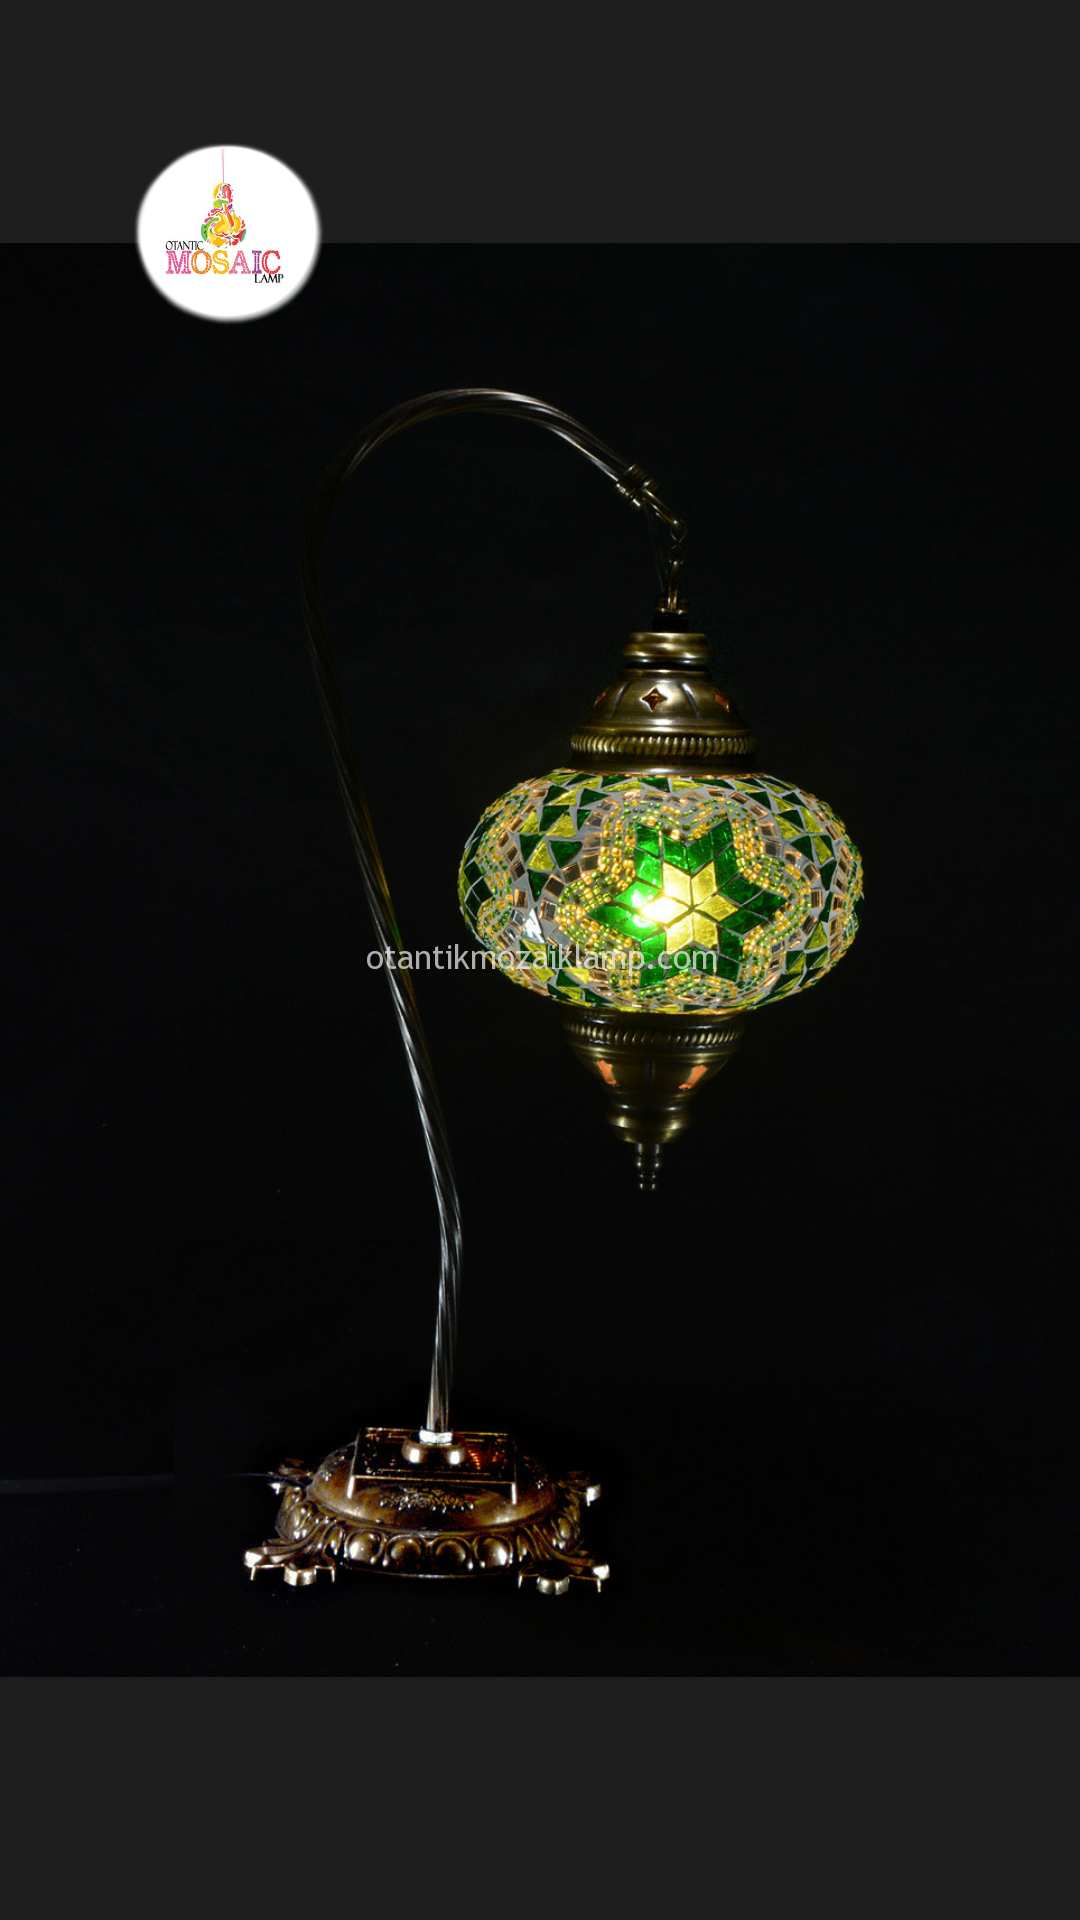 Turkish Mozaic Lamp Collection Mosaic Lamp Mosaic Lamp